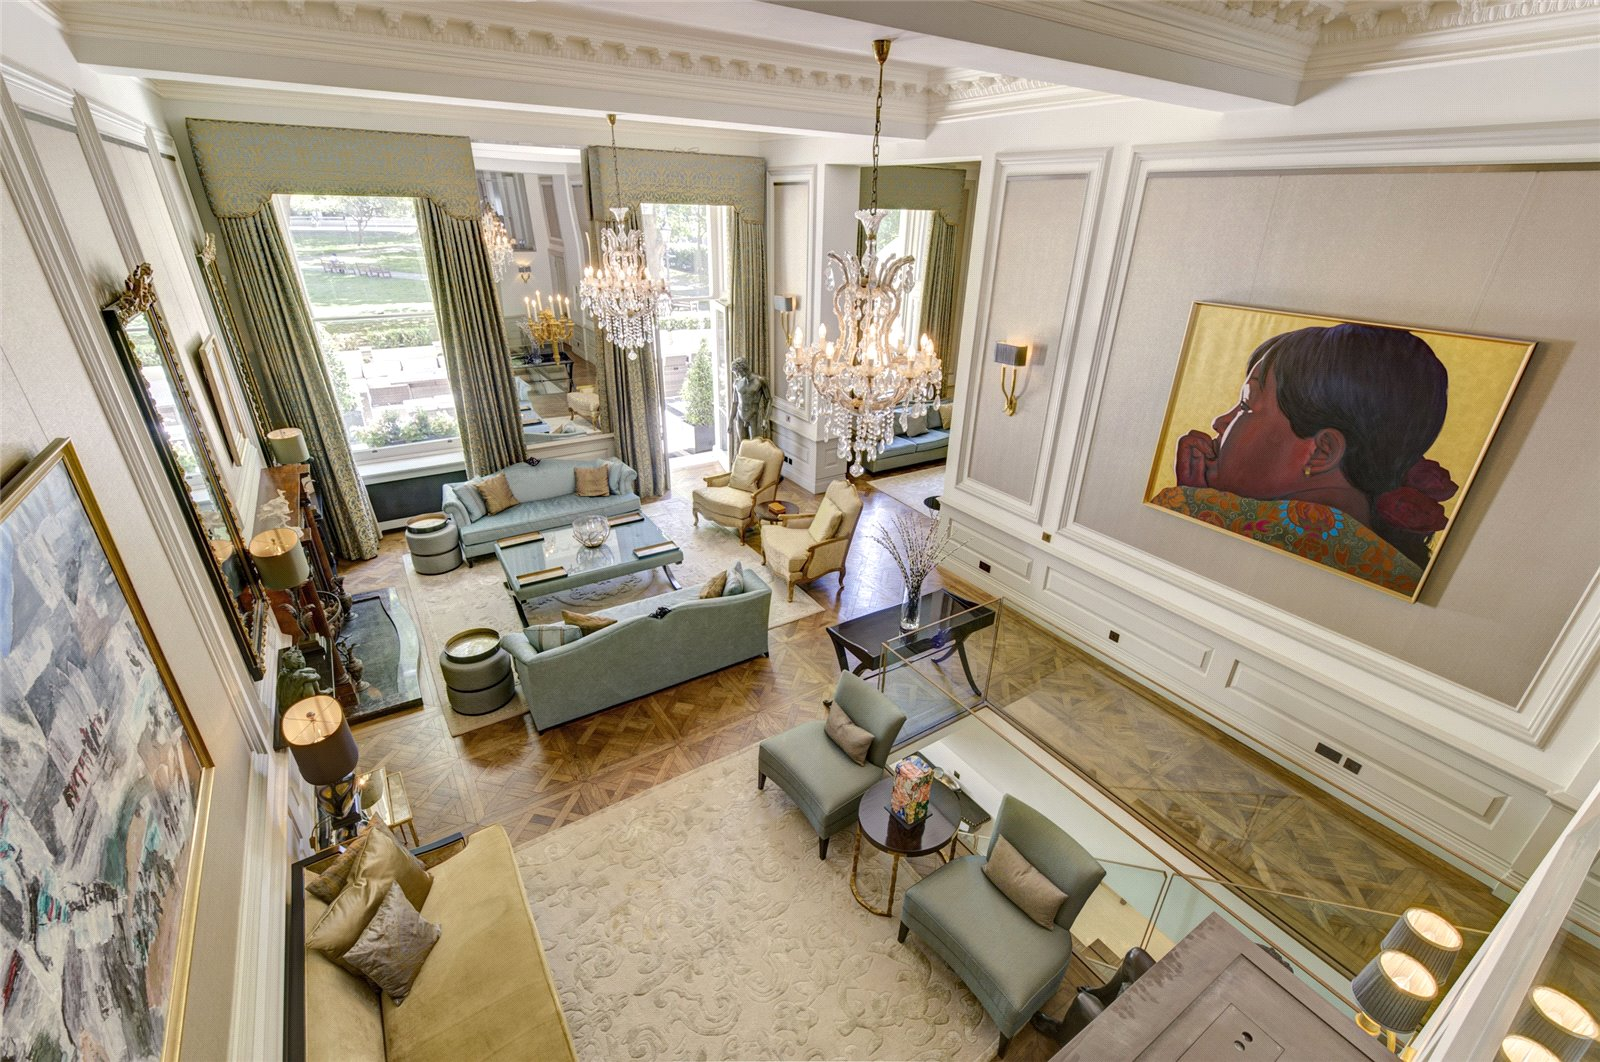 Apartment for Rent at Princes Gate, South Kensington, London, SW7 Princes Gate, South Kensington, London, SW7